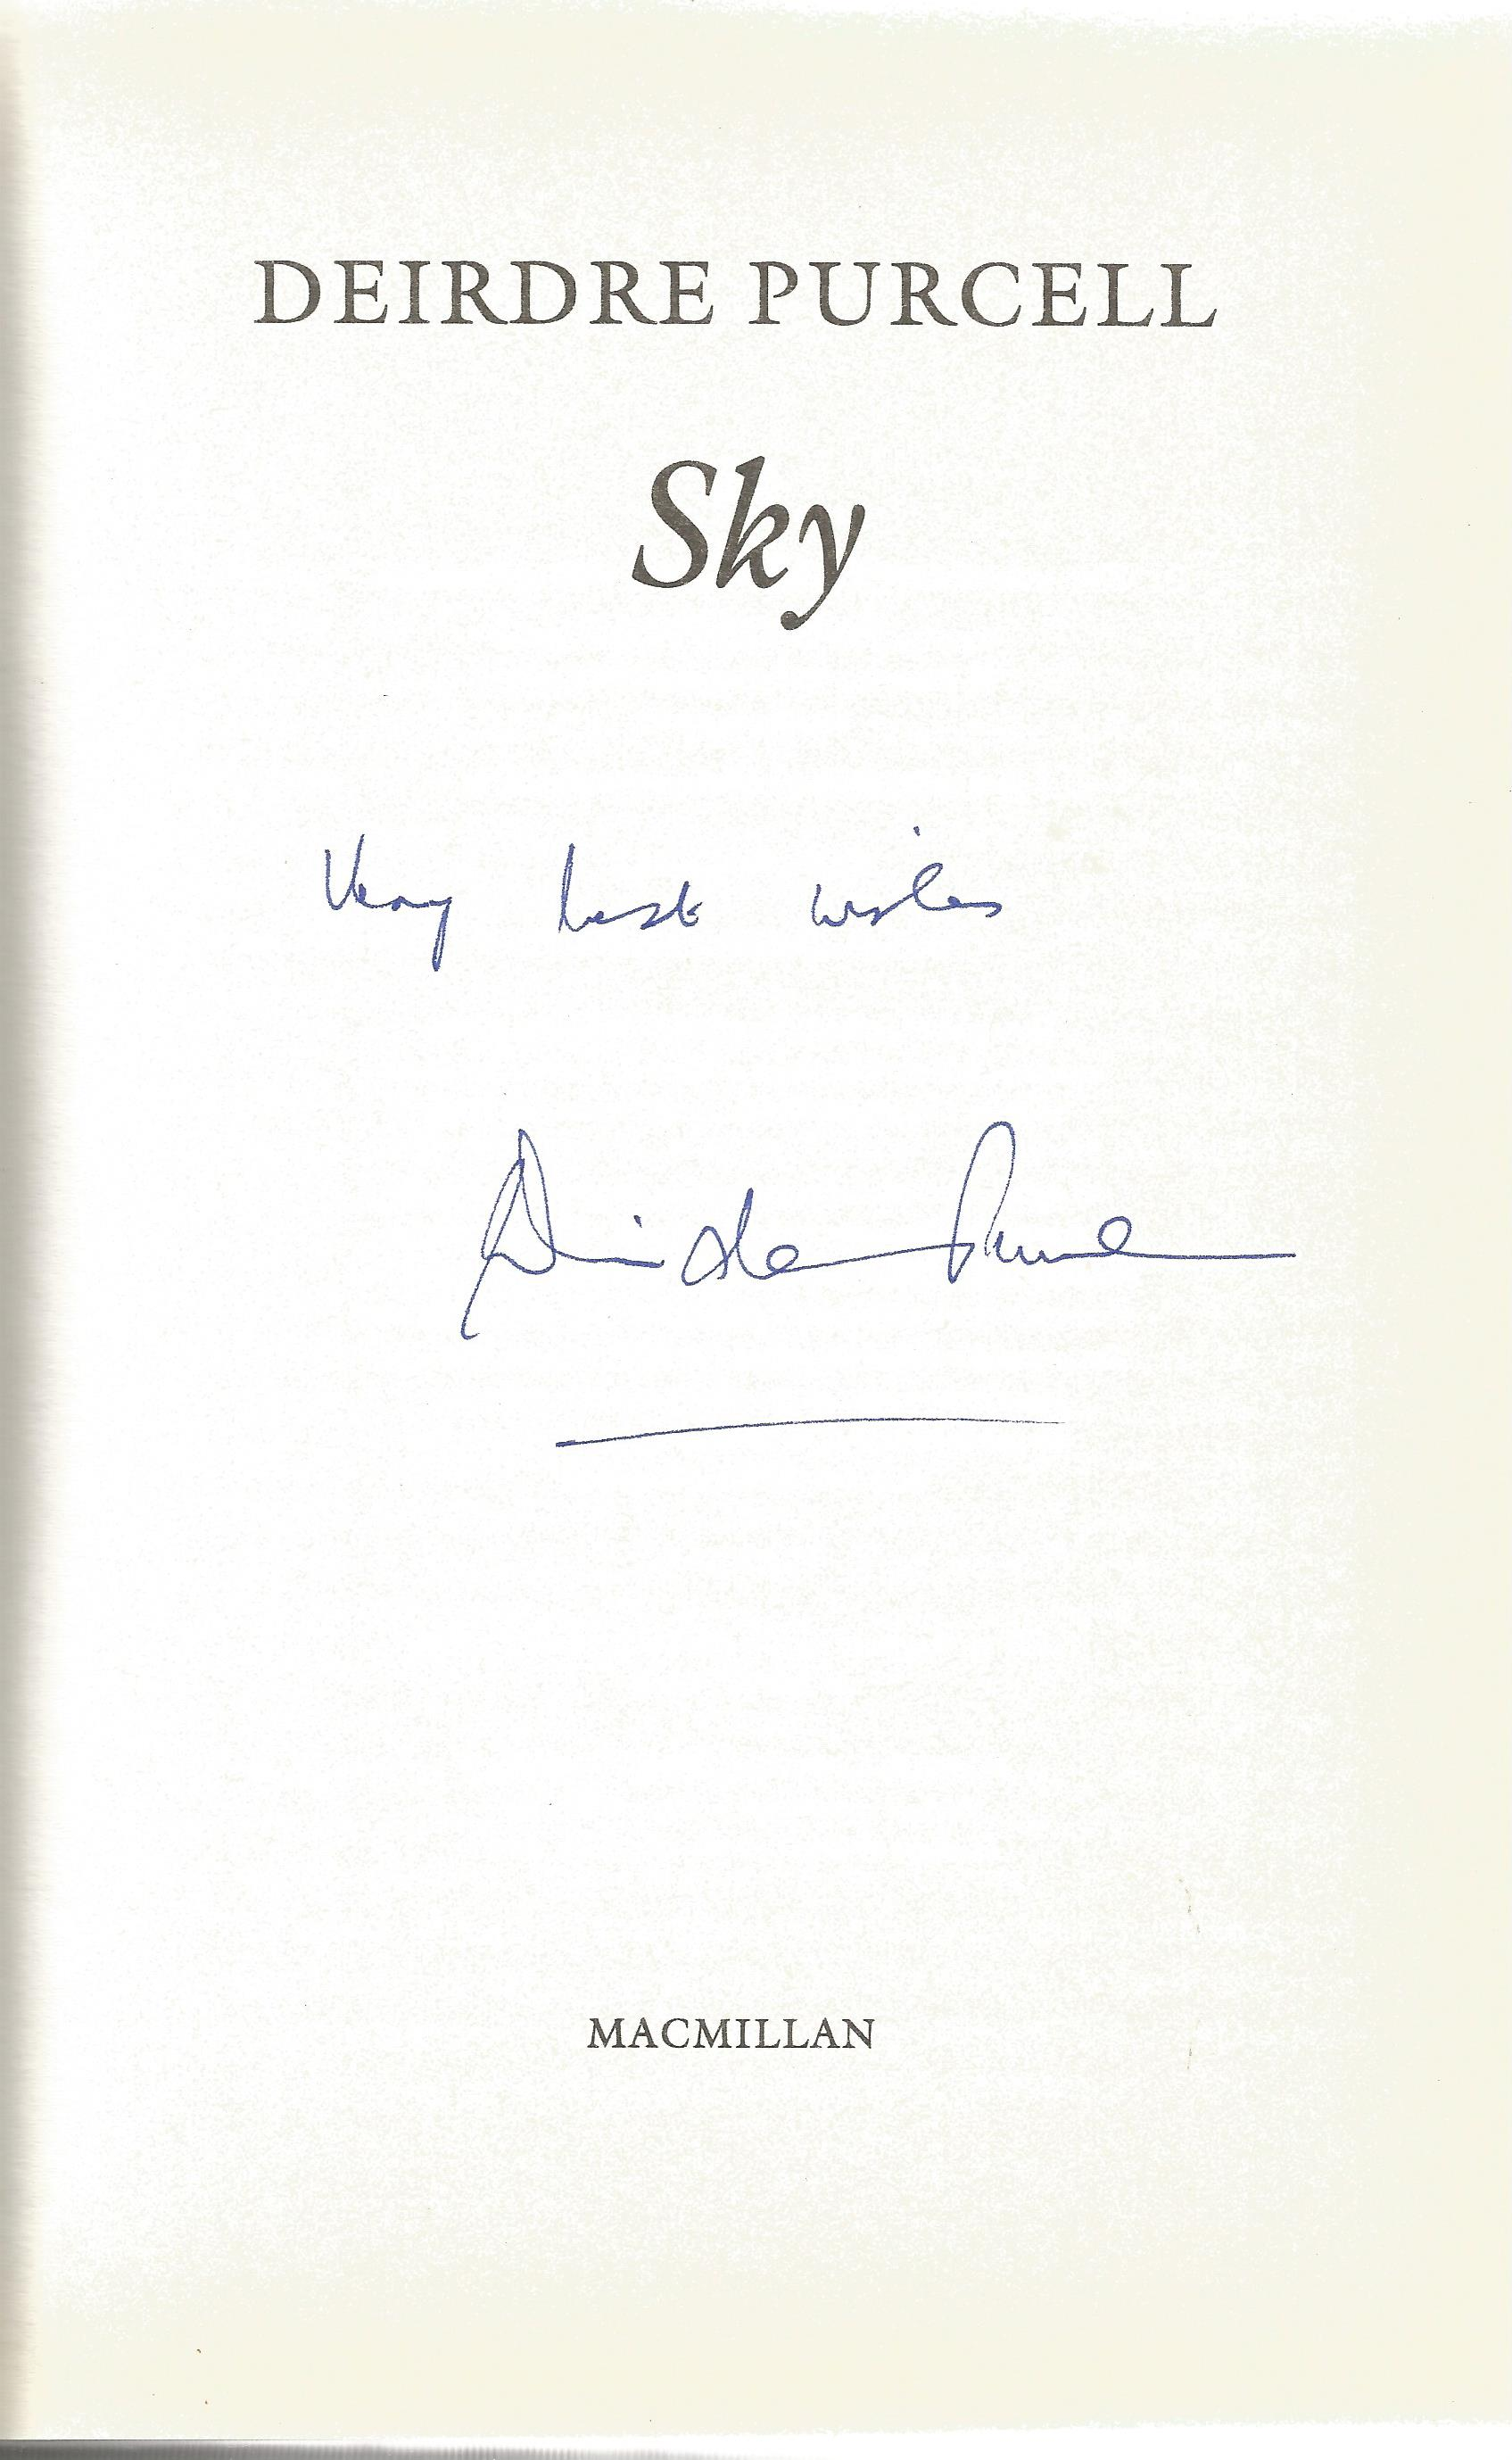 Deirdre Purcell Hardback Book Sky 1995 signed by the Author on the Title Page minor creasing at - Image 2 of 2